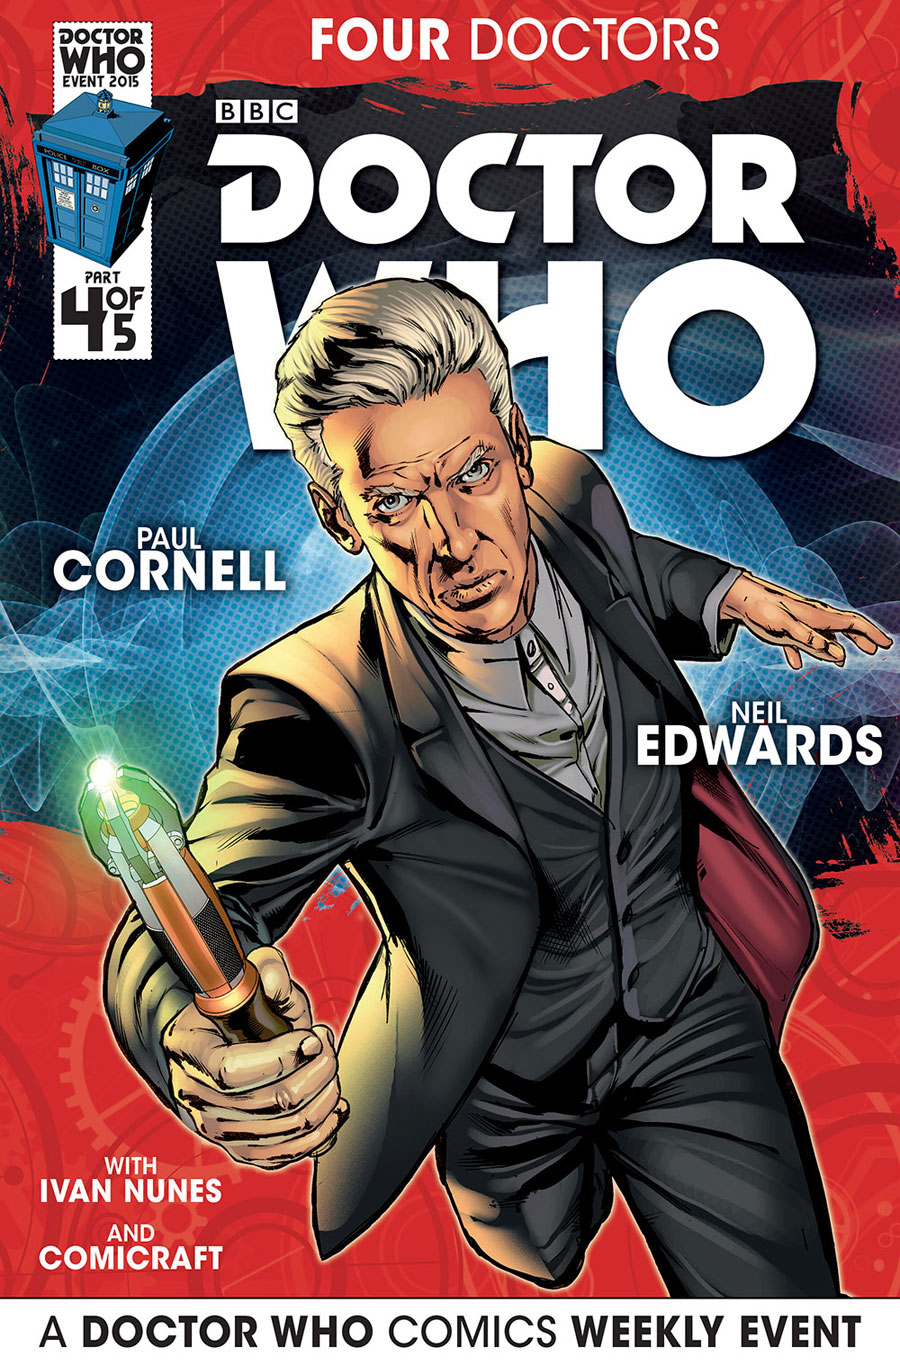 Titan-Comics-Doctor-Who-4-Four-Doctors-Doctor-Who-Brasil